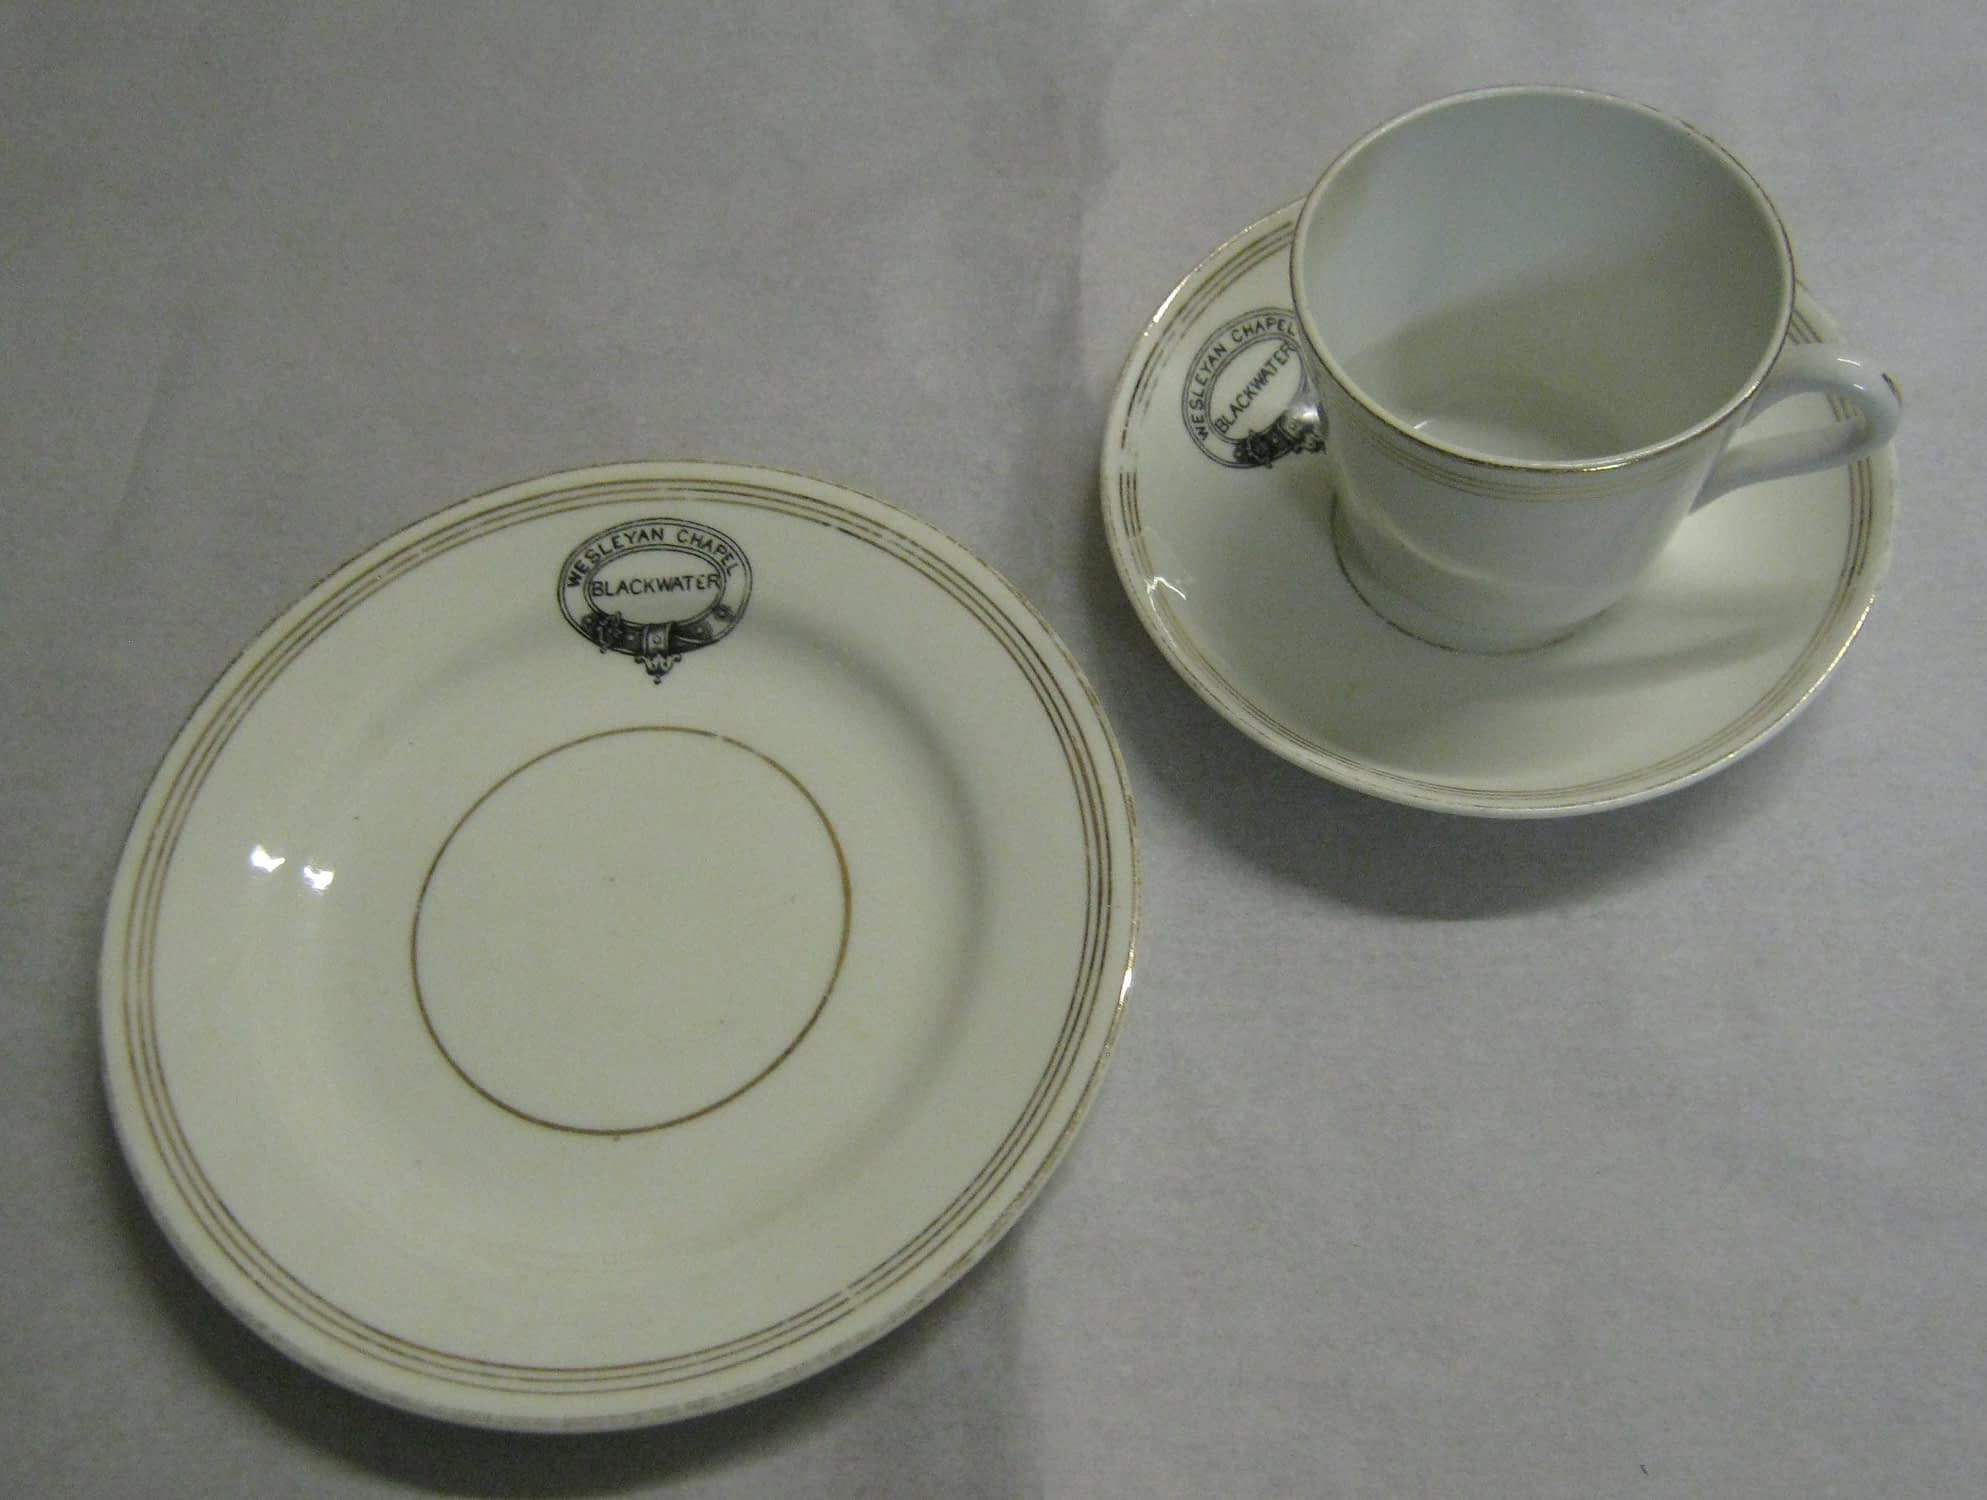 Crested china from Blackwater Methodist Church